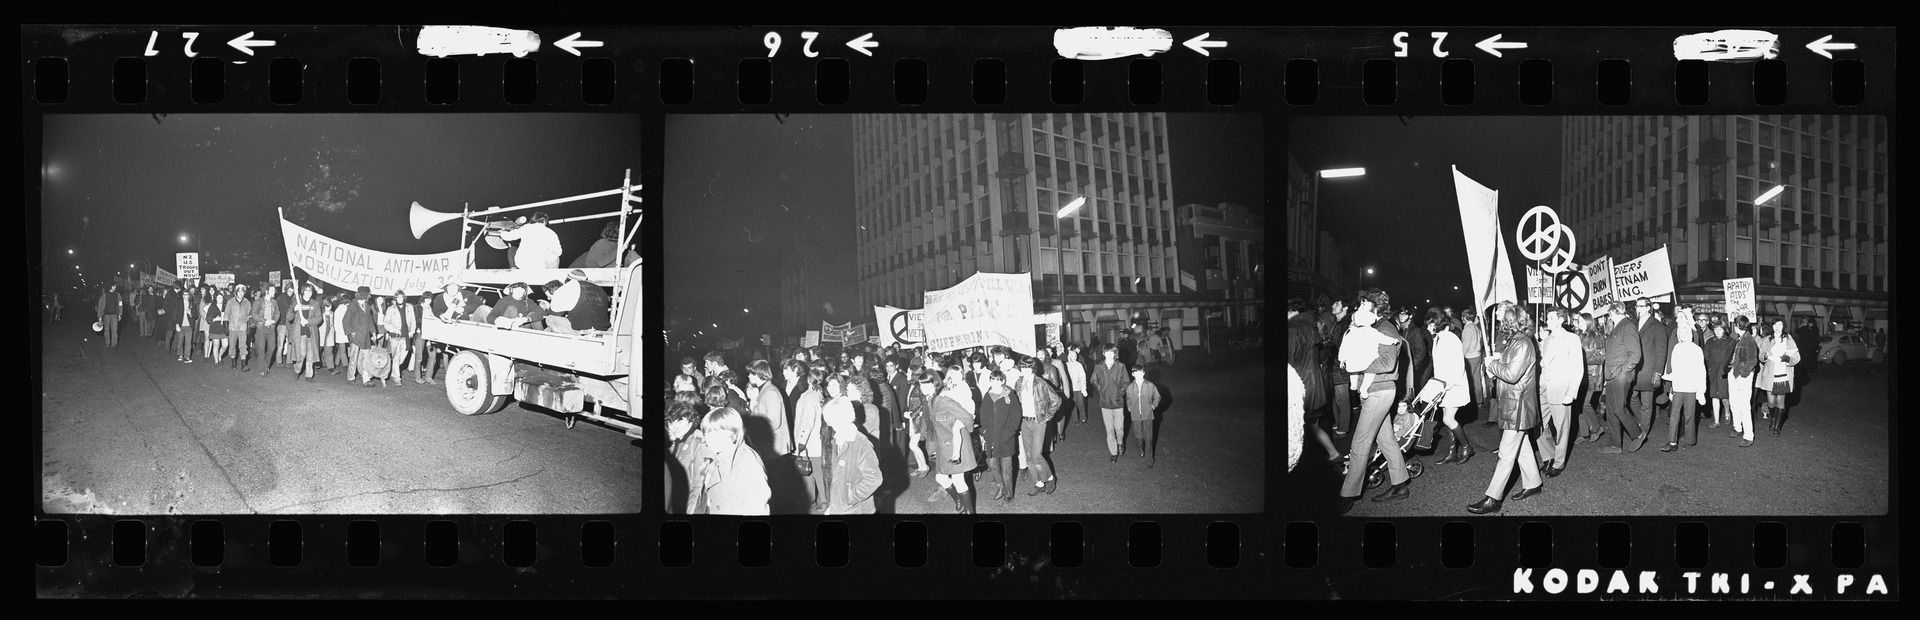 Negative showing Vietnam War protesters in Manchester Street